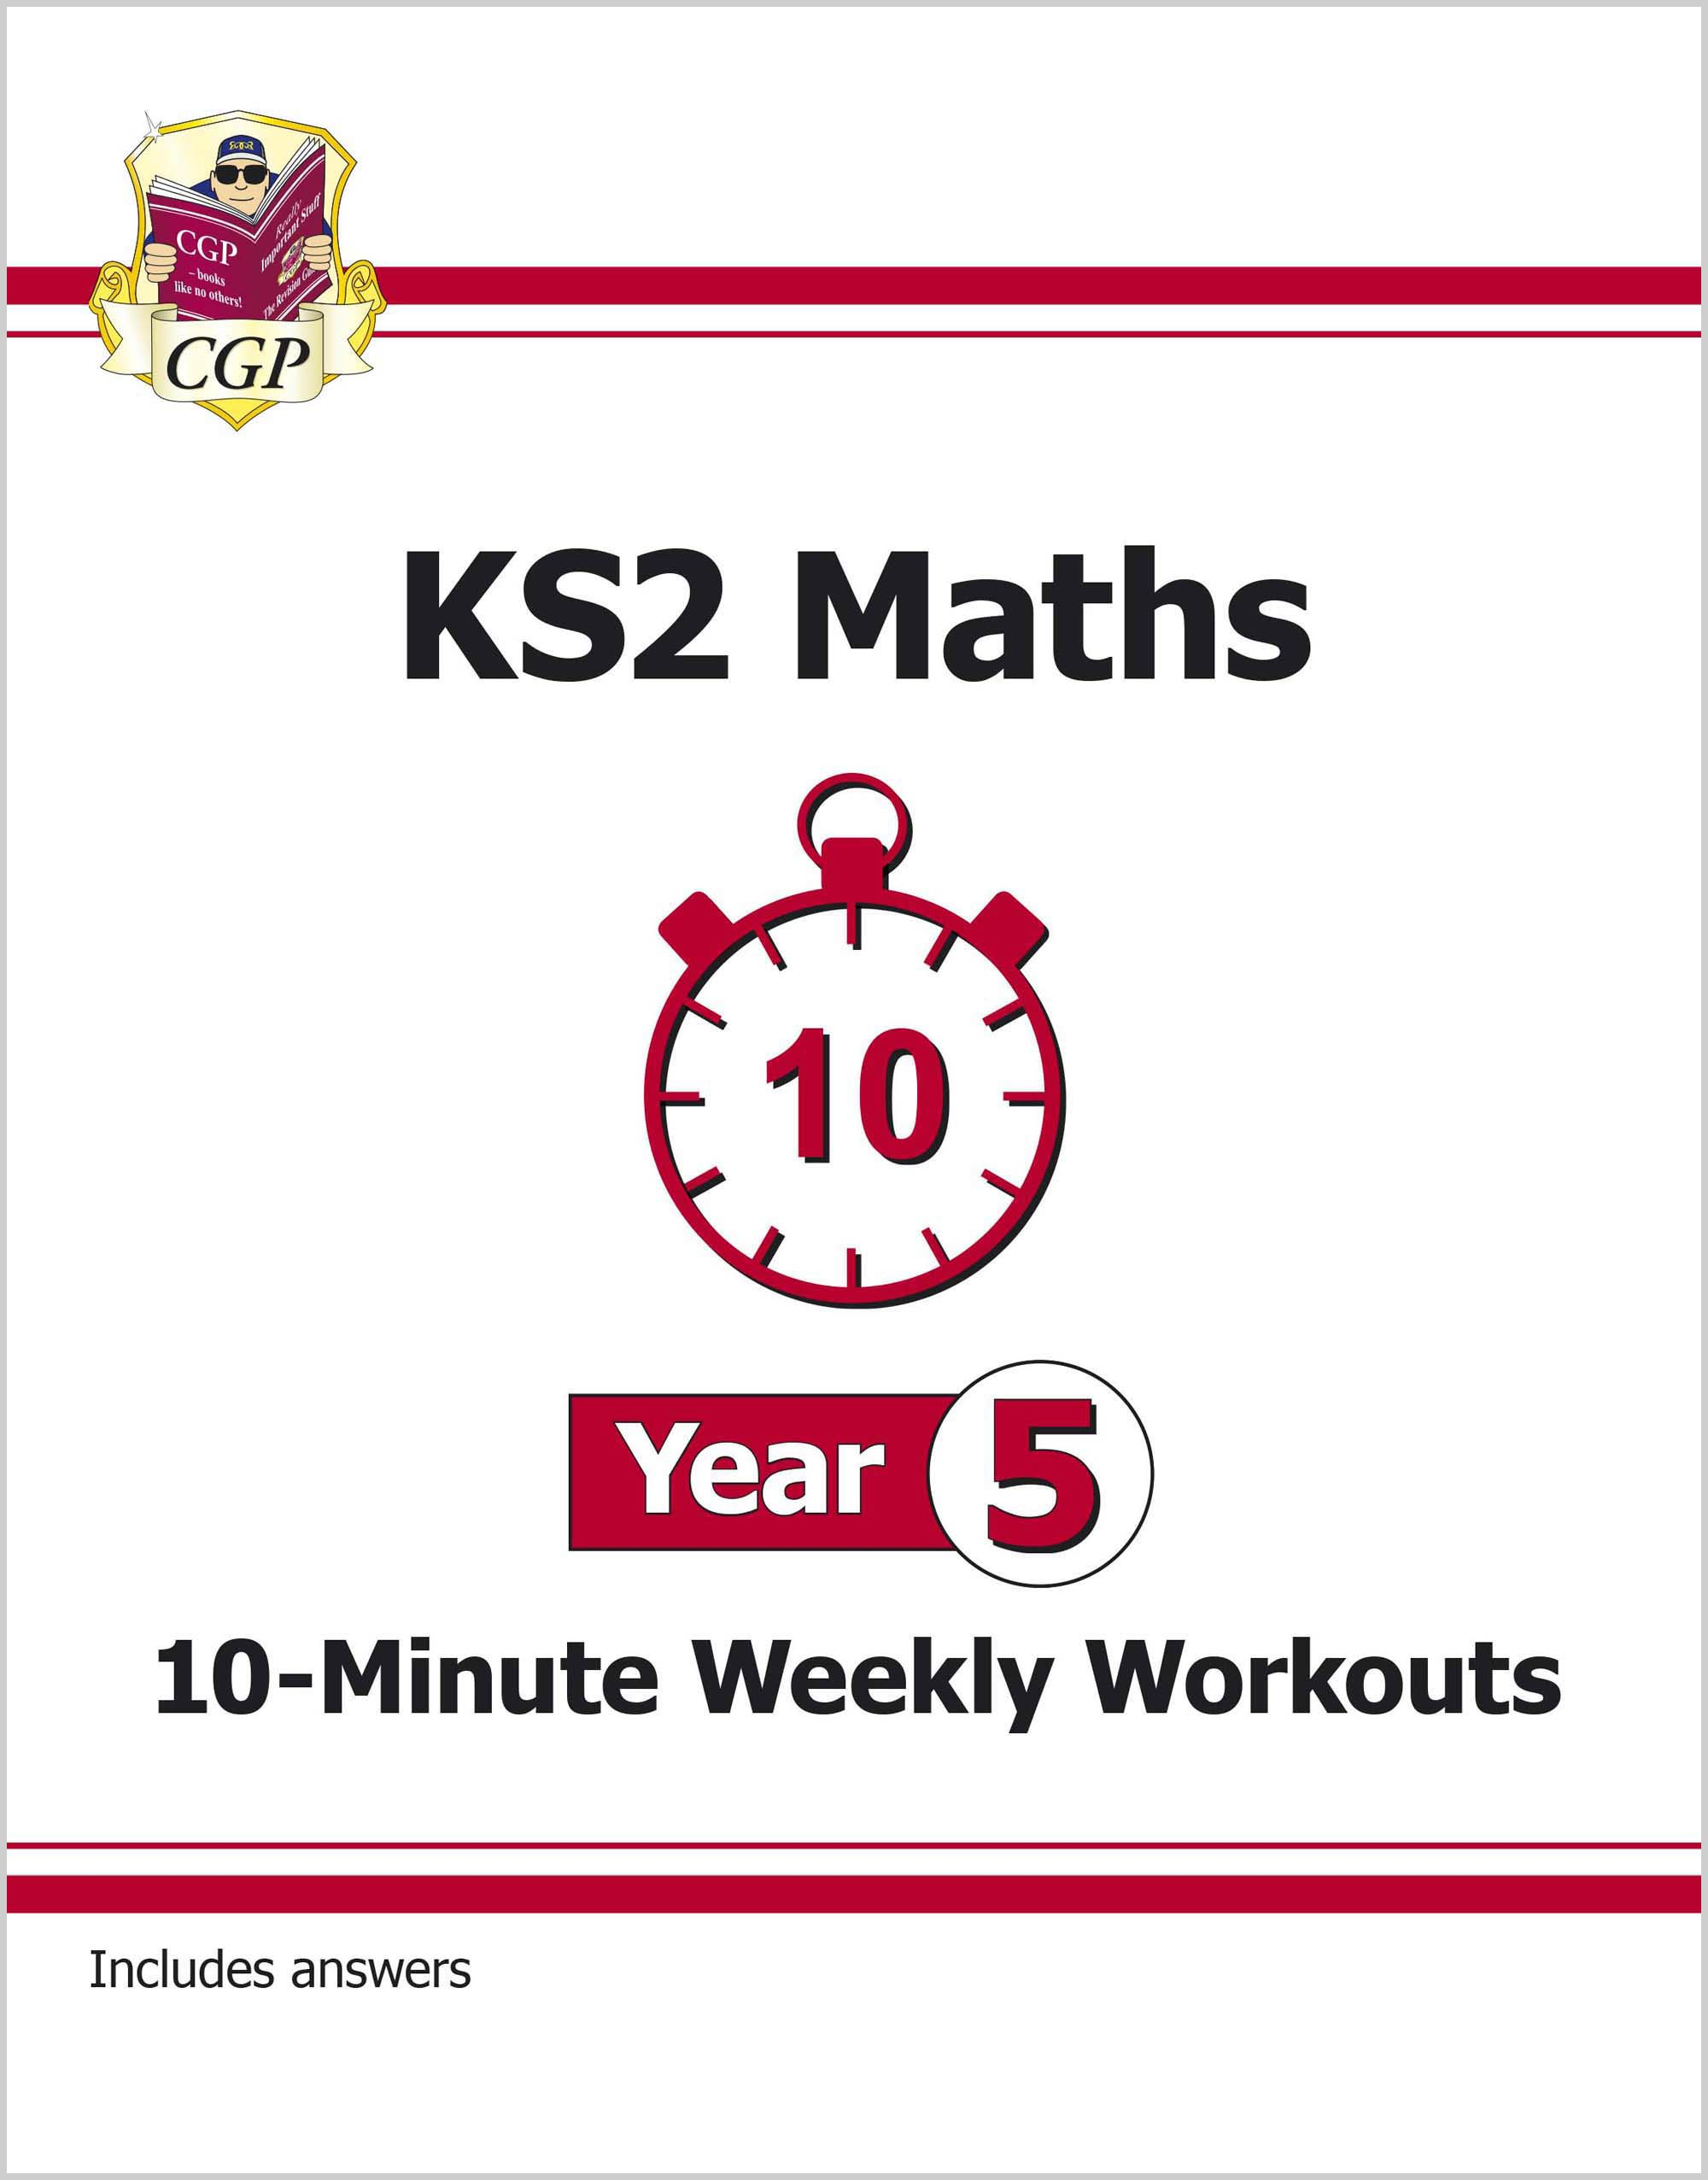 M5XW21DK - New KS2 Maths 10-Minute Weekly Workouts - Year 5